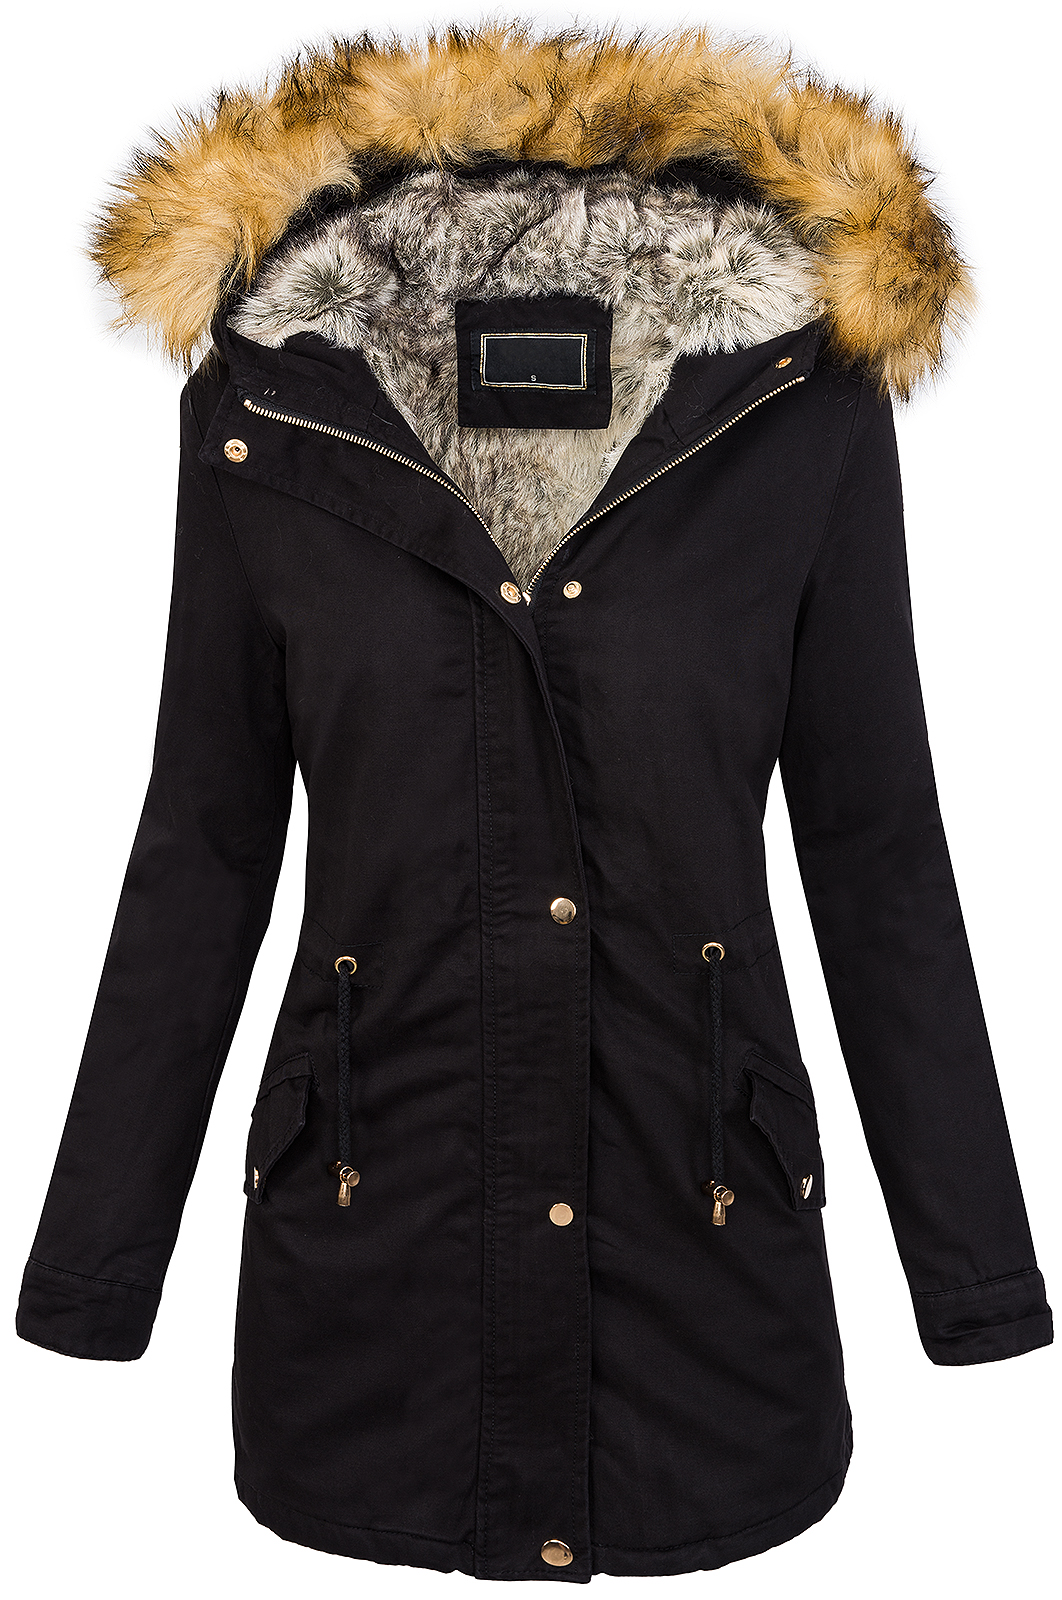 winter parka damen jacke mantel damenjacke kapuze mit kunstfell warm d 208 ebay. Black Bedroom Furniture Sets. Home Design Ideas